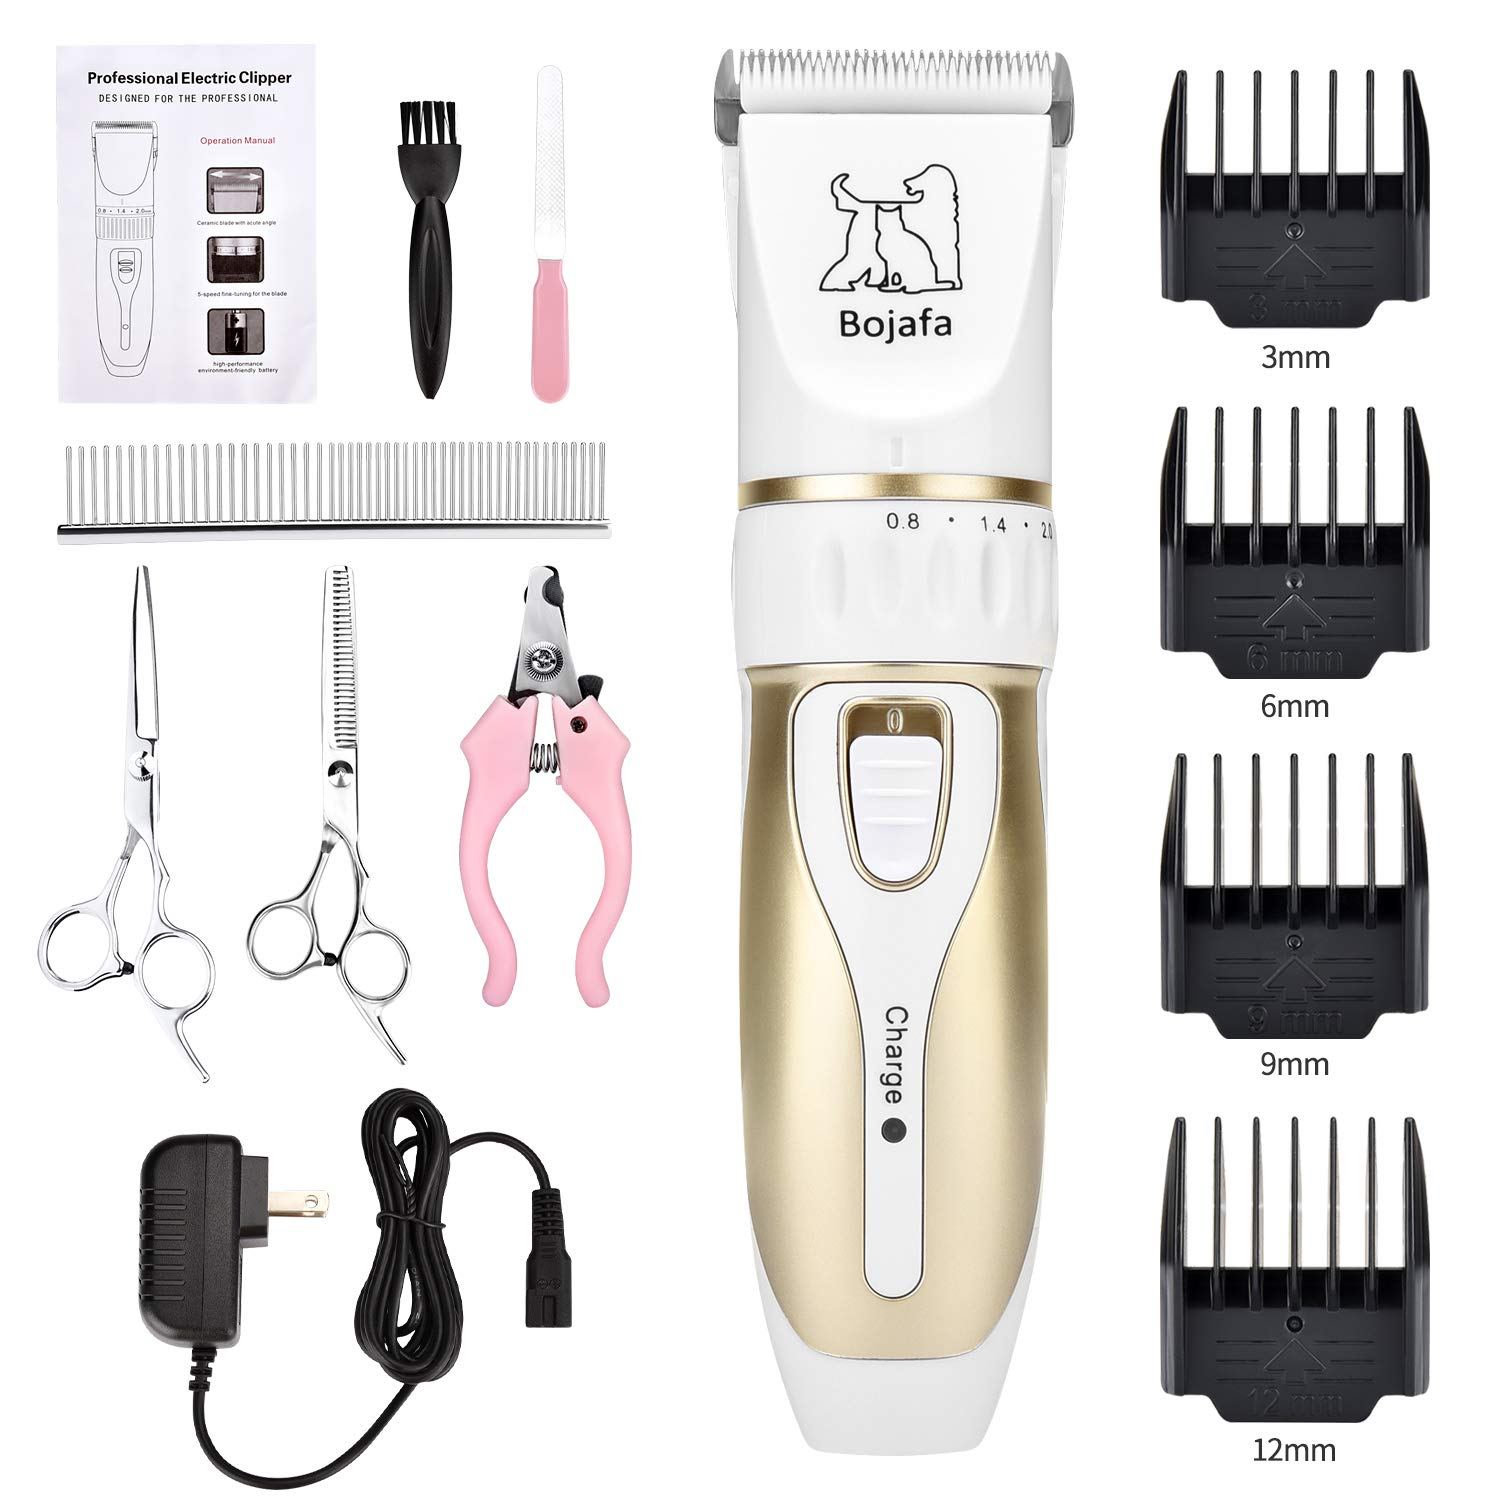 Bojafa Grooming Clippers Professional Rechargeable